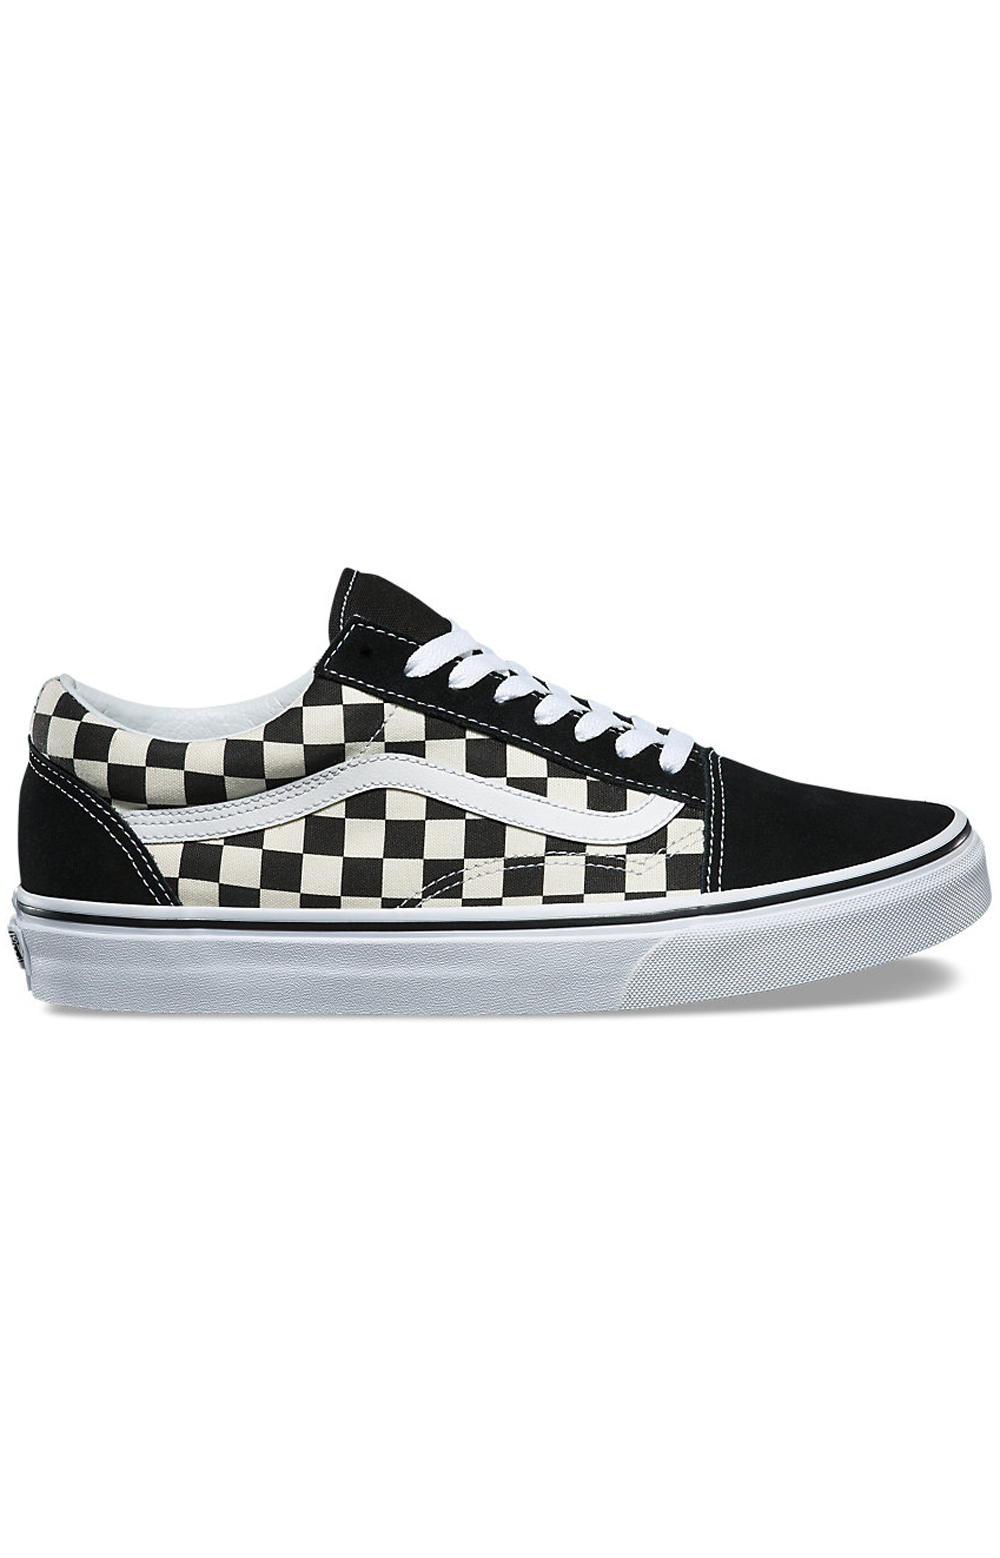 (8G1P0S) Primary Check Old Skool Shoe - Black/White